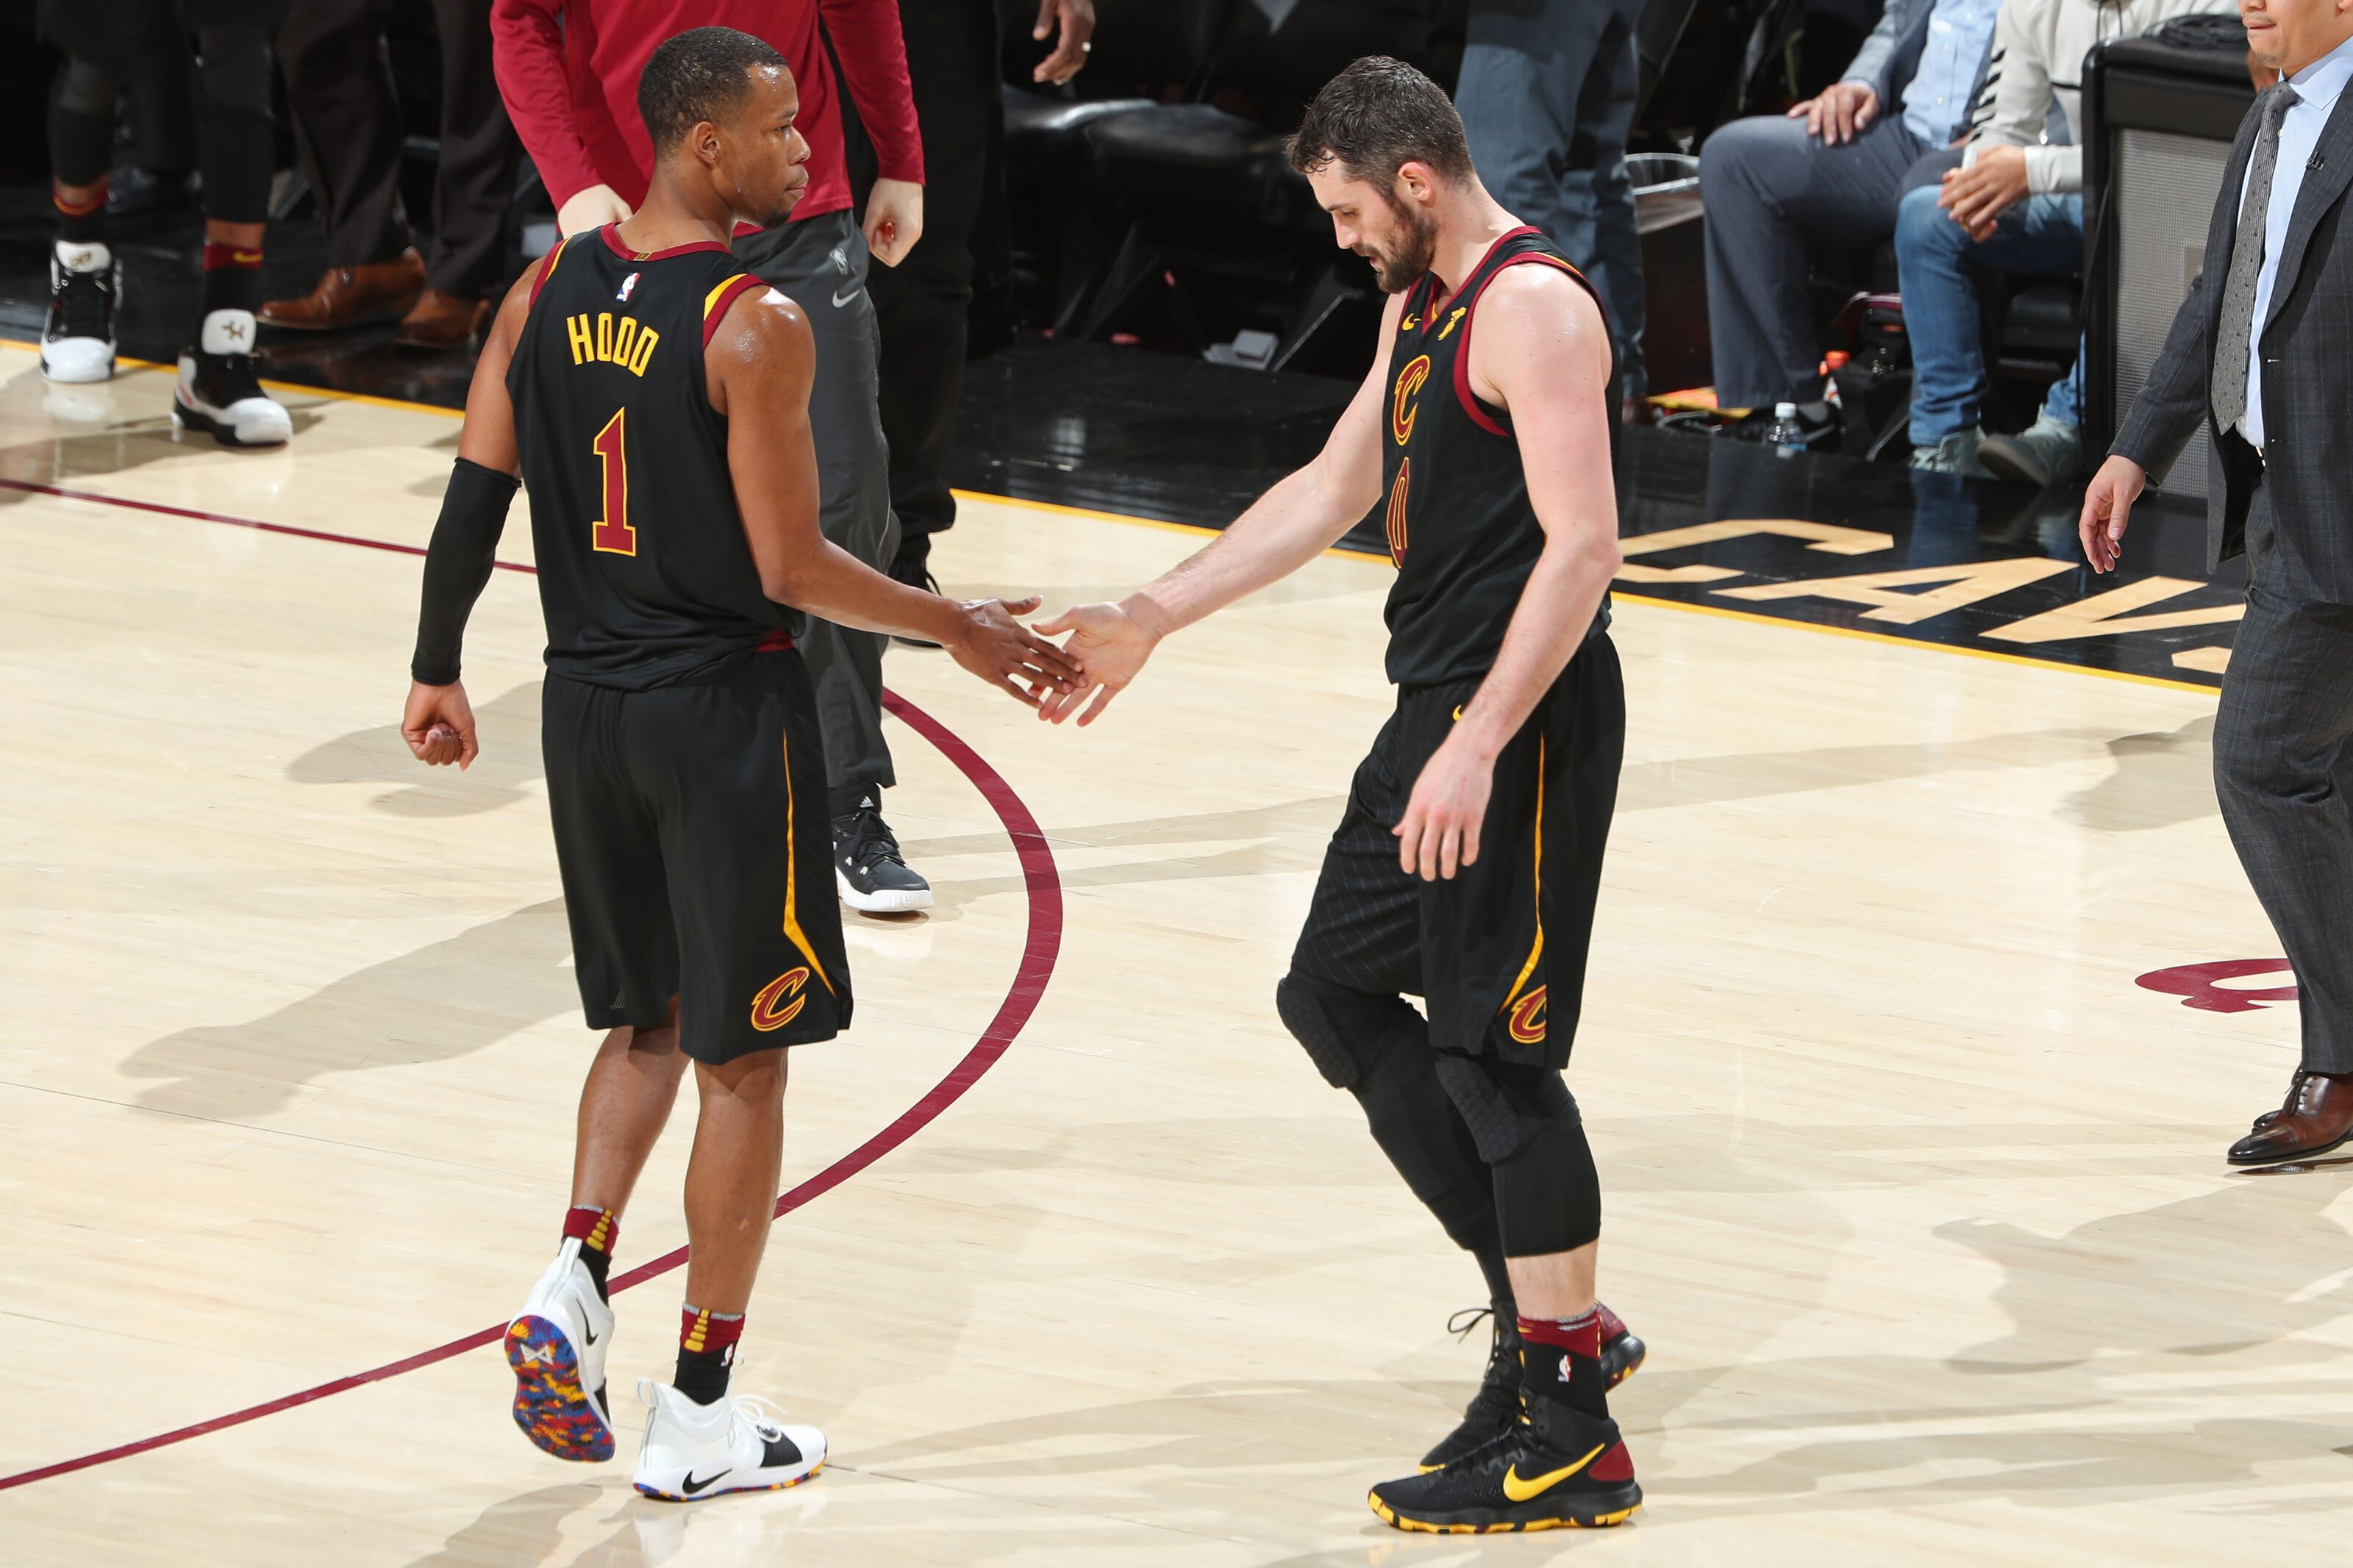 949700986-indiana-pacers-v-cleveland-cavaliers-game-two.jpg